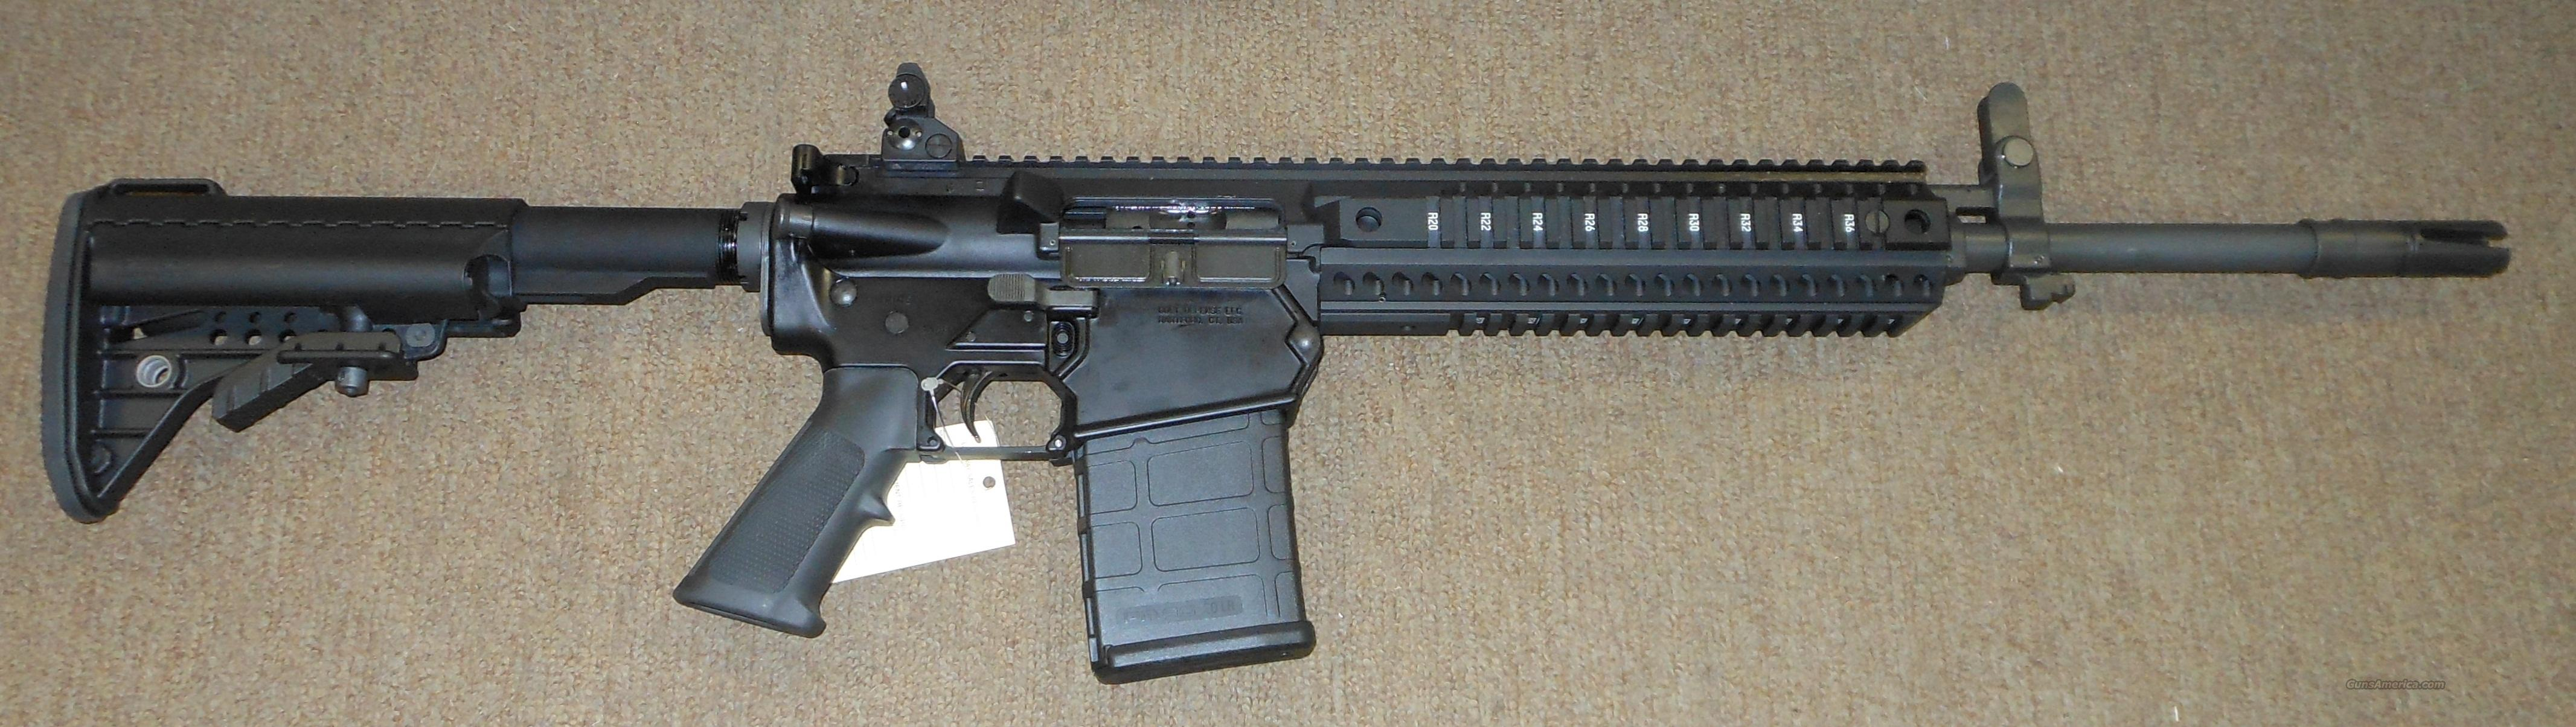 COLT LE901 16S 7.62 NATO MODULAR CARBINE  Guns > Rifles > Colt Military/Tactical Rifles